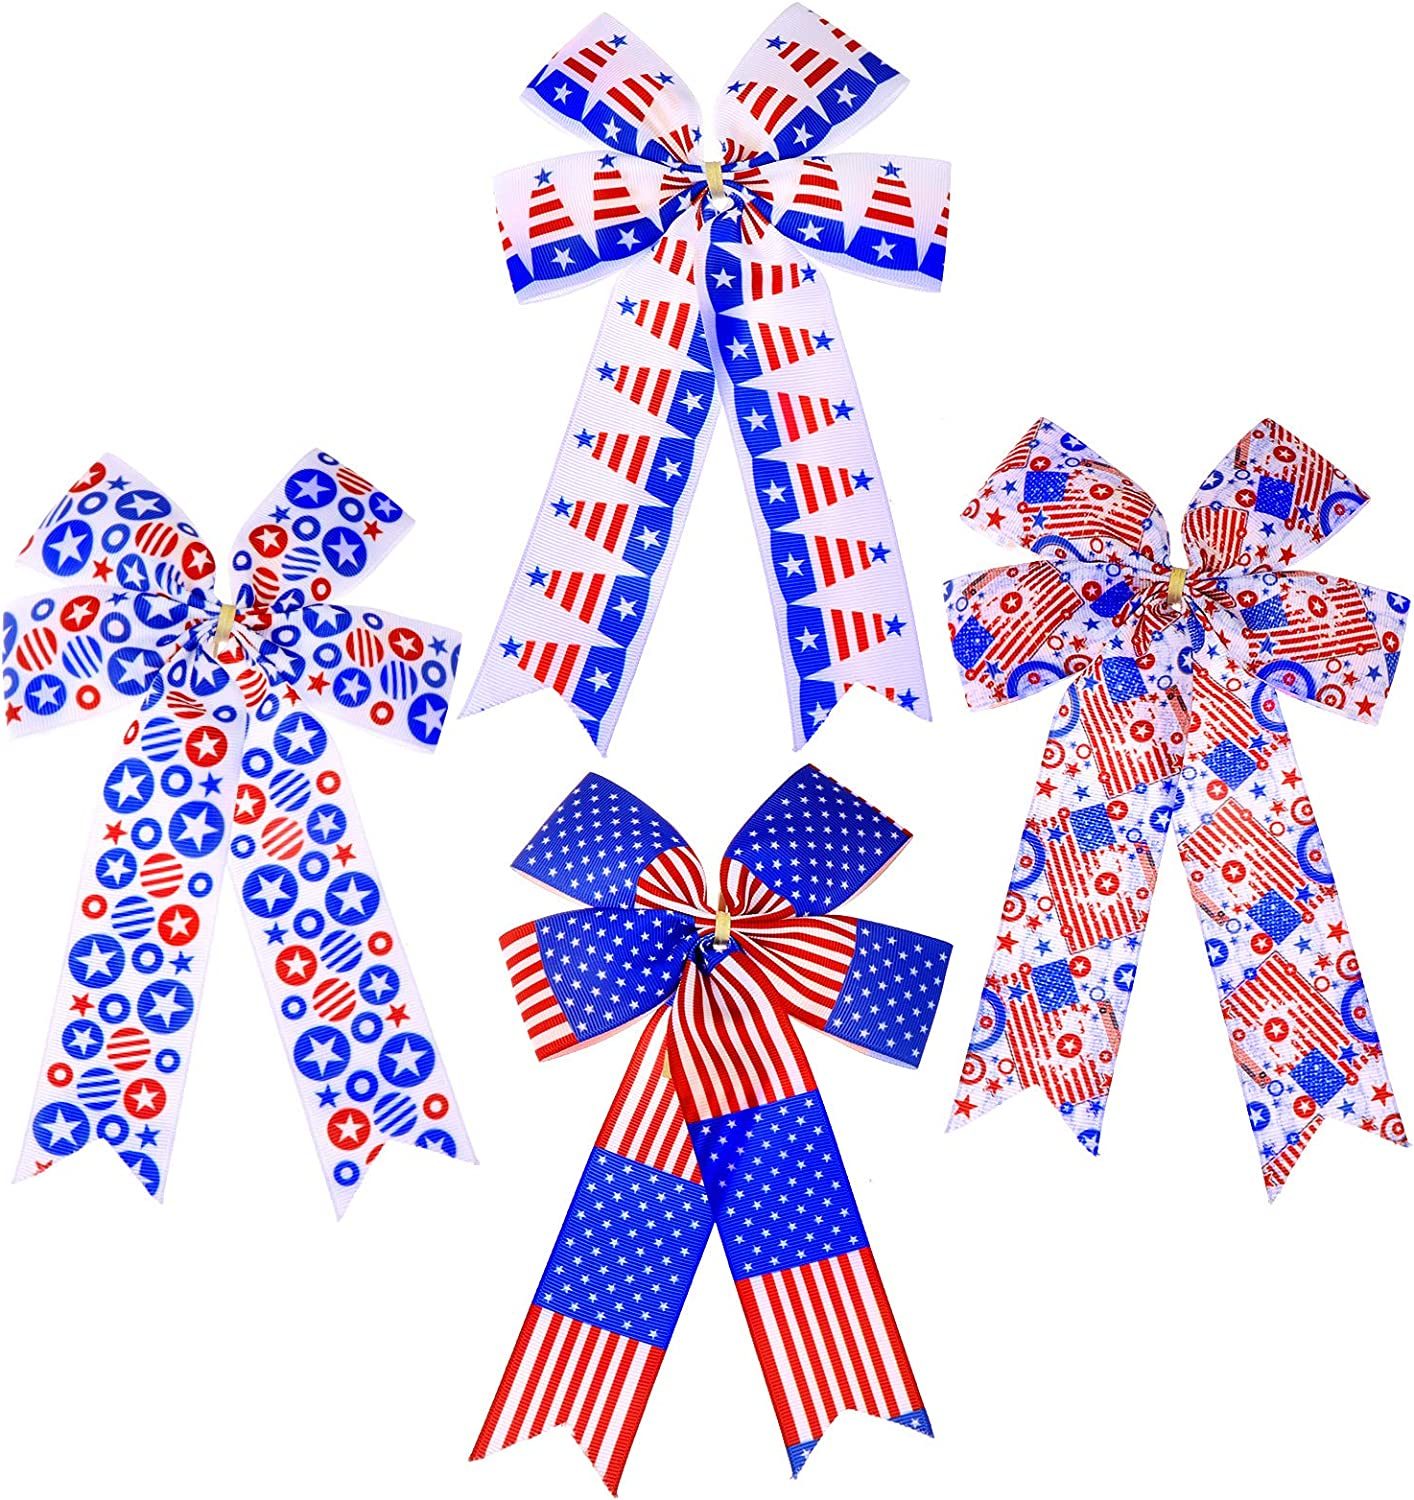 4 Pieces Patriotic Bows Red White and Blue Independent Day Patriotic Decor for Outdoor and Indoor Decorations of 4th of July and Veteran Day